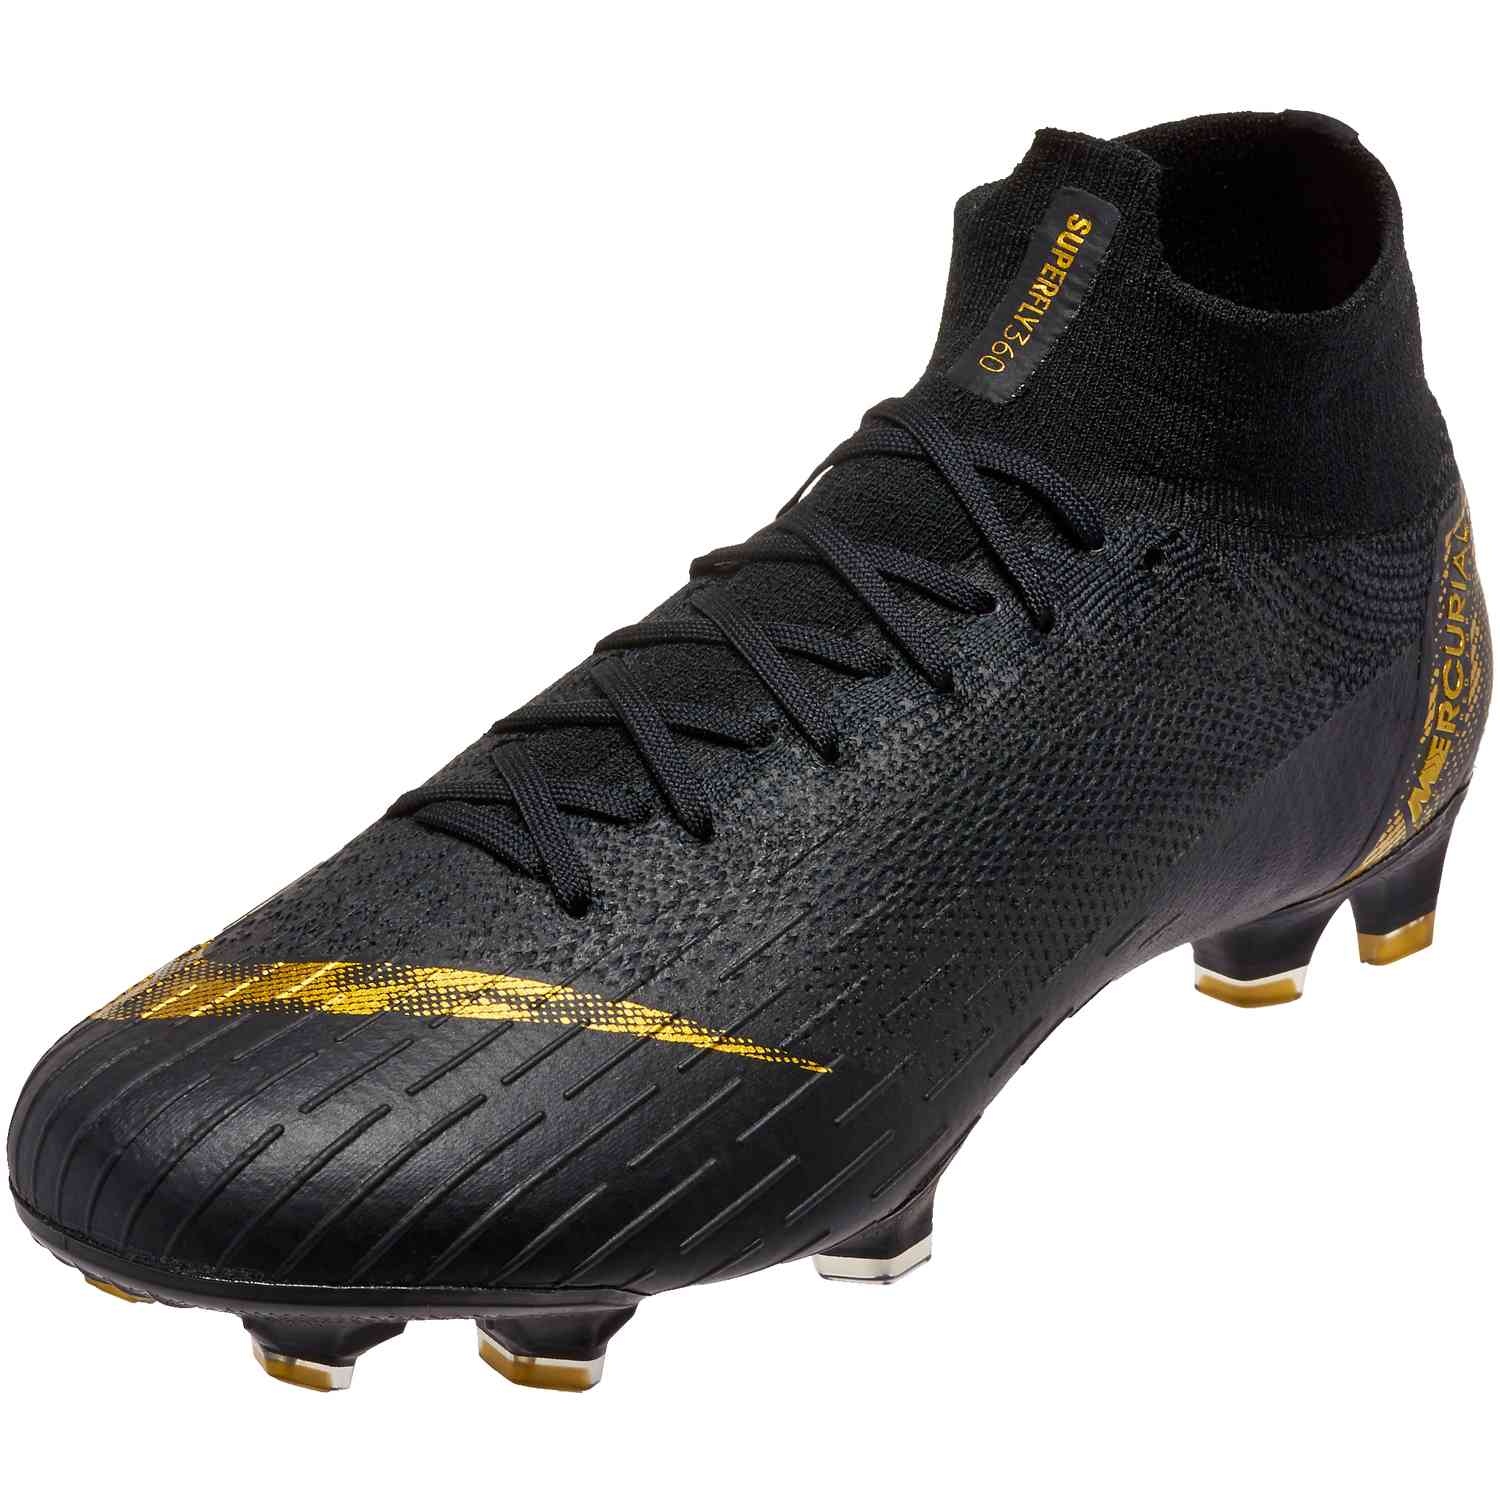 size 40 0d2bc 73043 Nike Mercurial Superfly 6 Elite FG – Black Lux